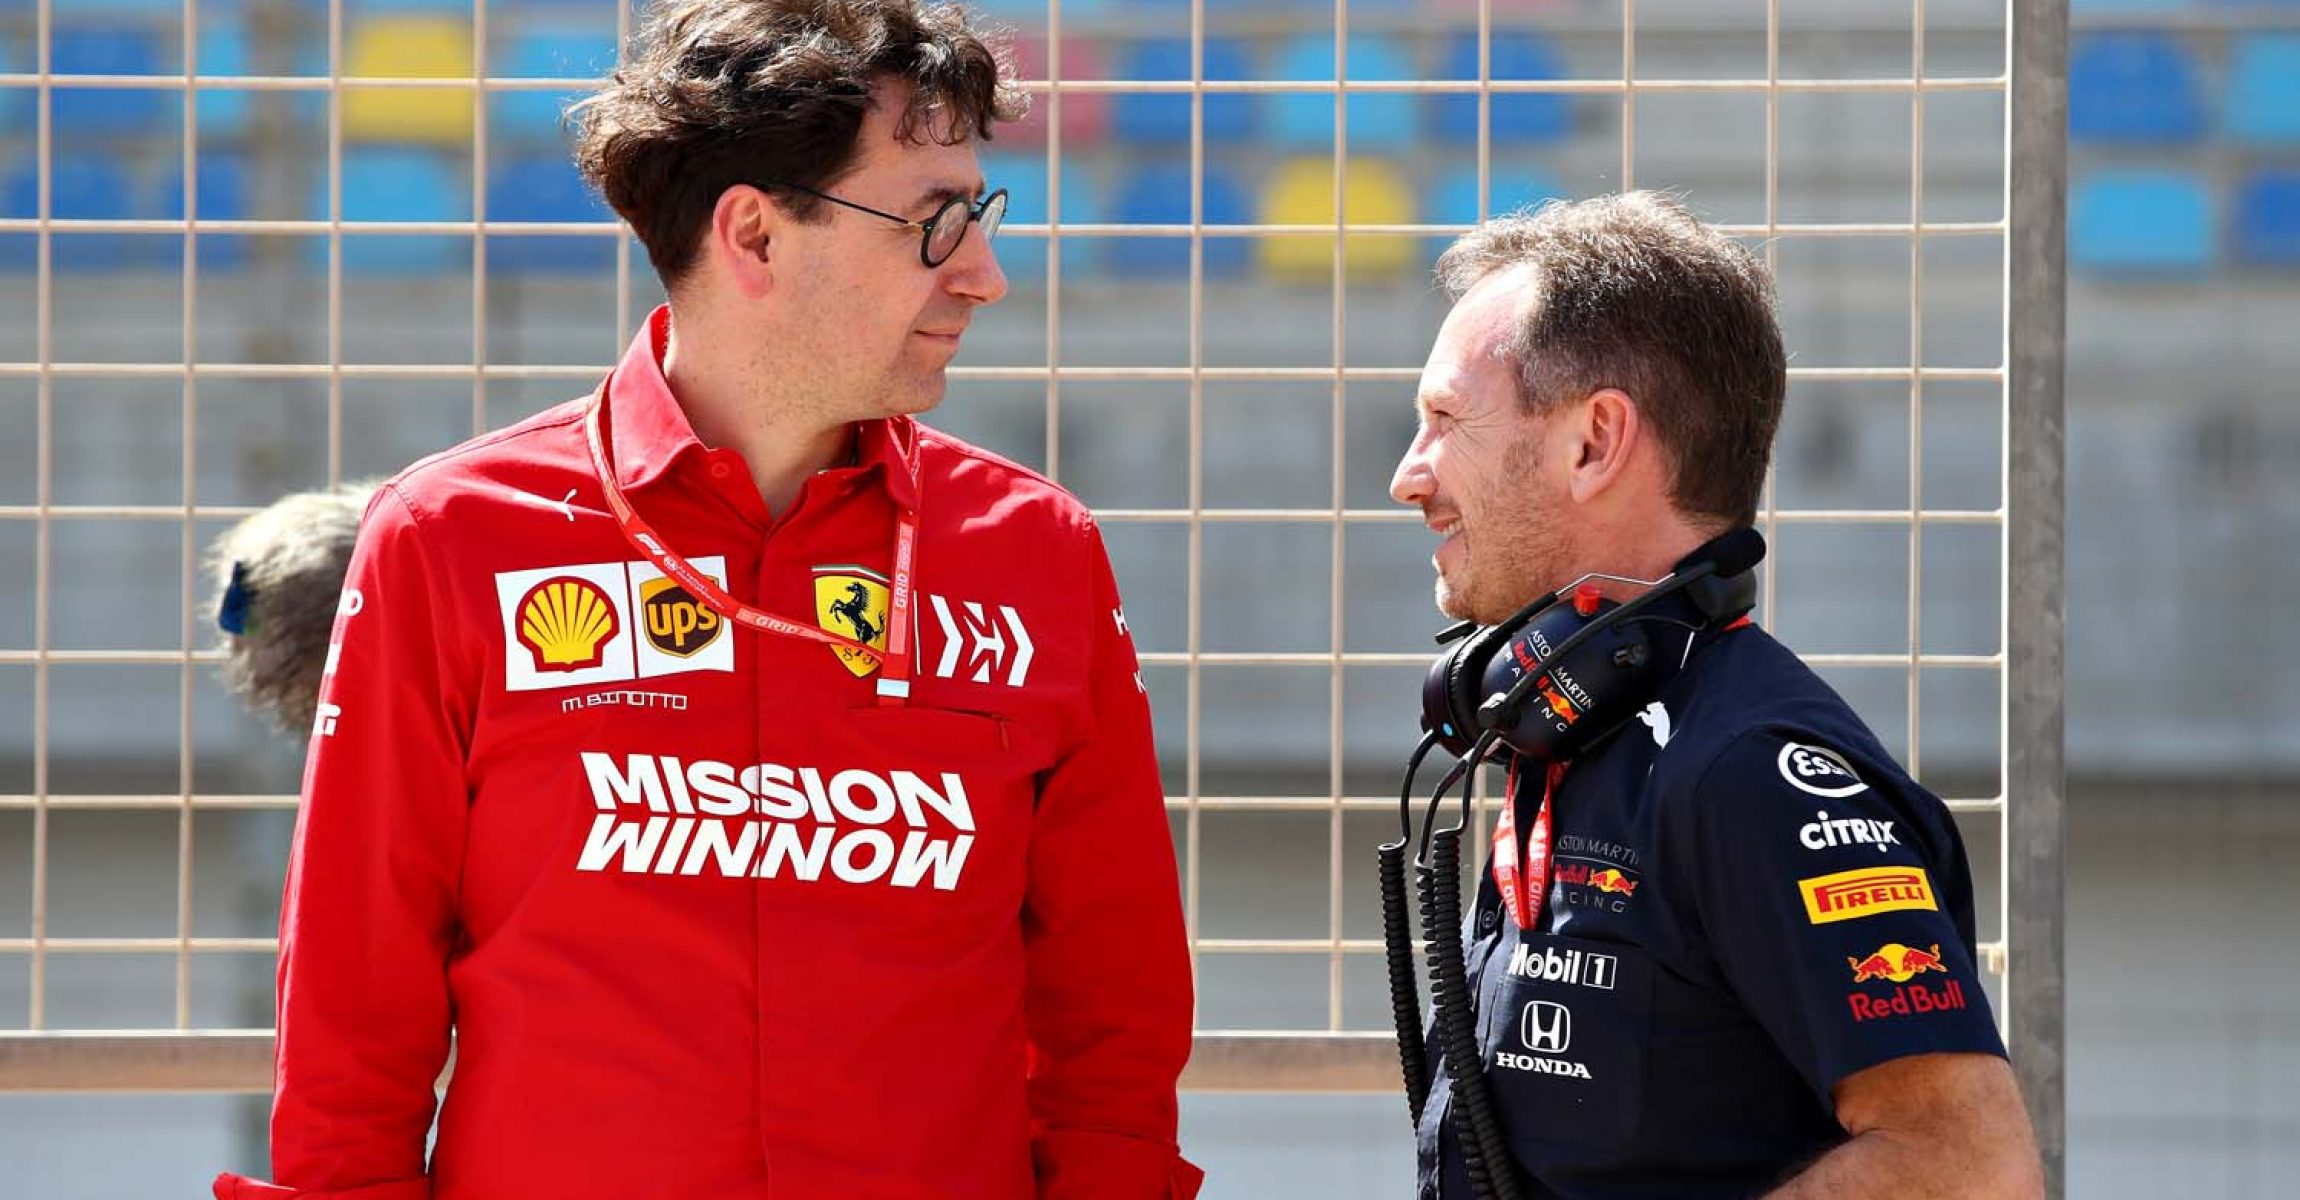 BAHRAIN, BAHRAIN - MARCH 29: Red Bull Racing Team Principal Christian Horner talks with Ferrari Team Principal Mattia Binotto during practice for the F1 Grand Prix of Bahrain at Bahrain International Circuit on March 29, 2019 in Bahrain, Bahrain. (Photo by Mark Thompson/Getty Images) // Getty Images / Red Bull Content Pool // AP-1YVAQTM352111 // Usage for editorial use only // Please go to www.redbullcontentpool.com for further information. //